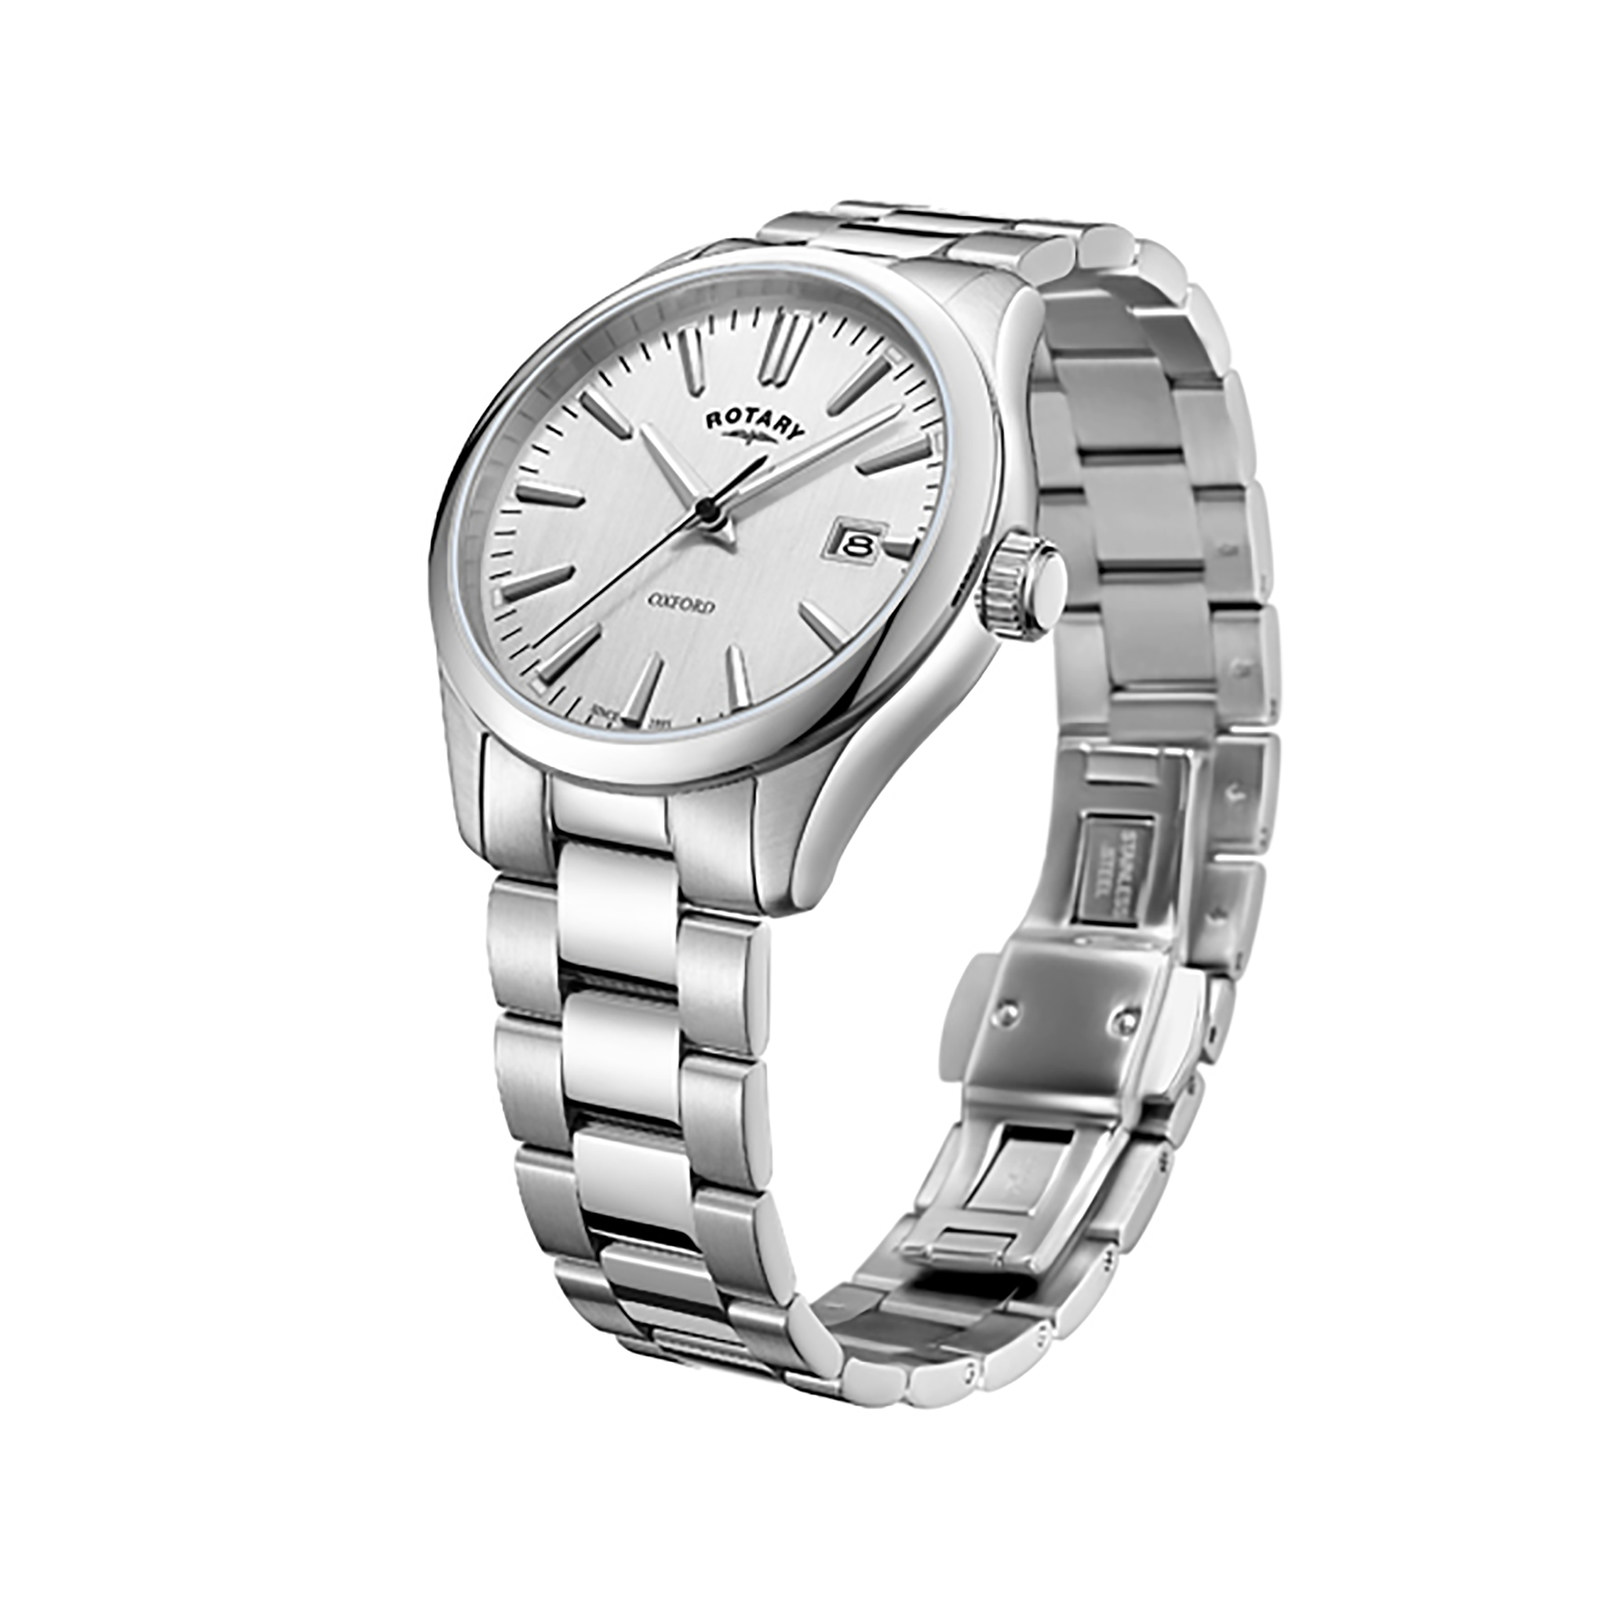 london watches noble of links steel bracelet silver watch slim womens image stainless